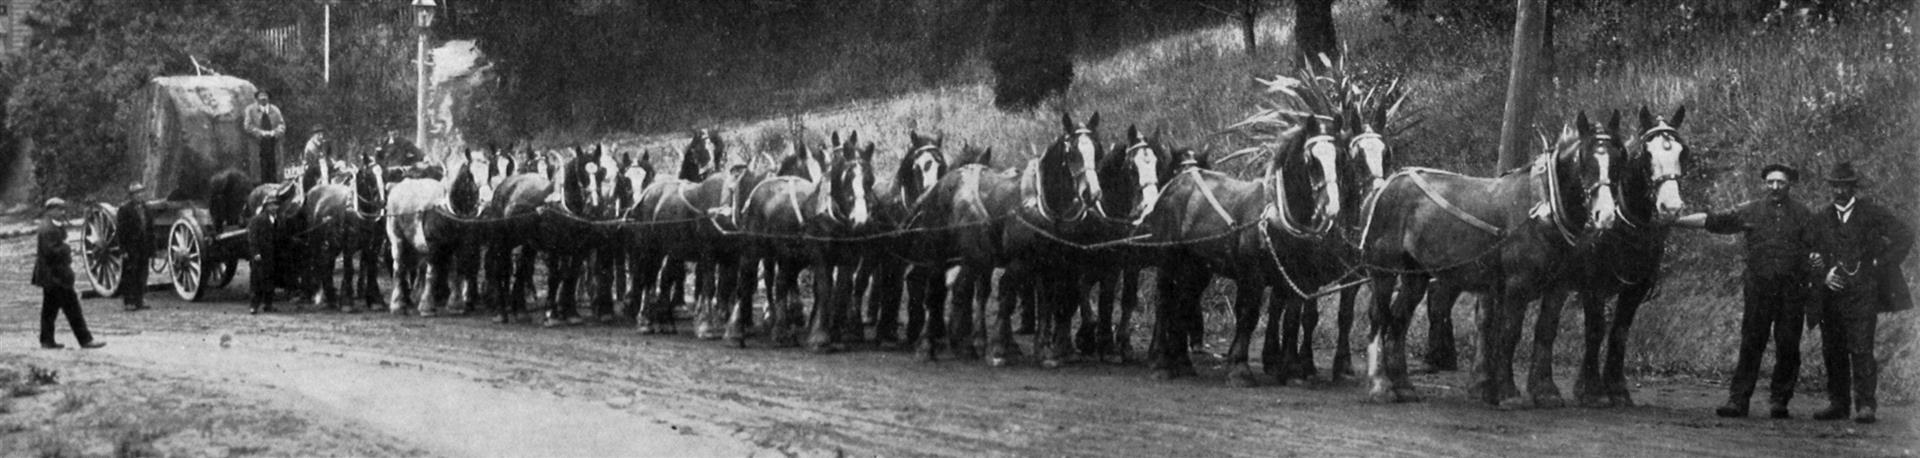 A 24 horse team from the New Zealand Express Company Ltd was used to deploy the 4 kilometre long...